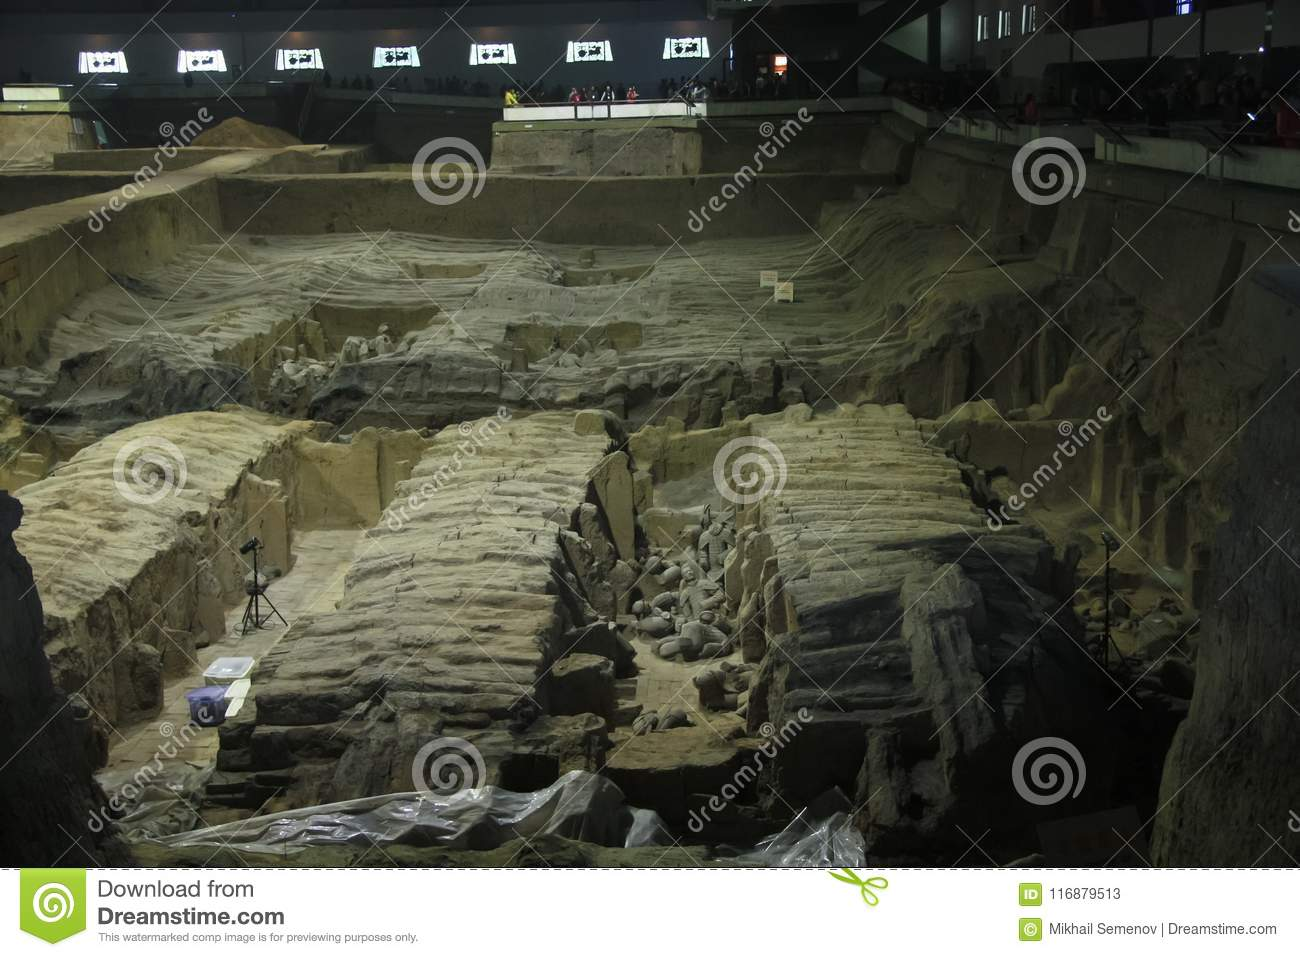 The clay army of the emperor Qin Shi Huang.